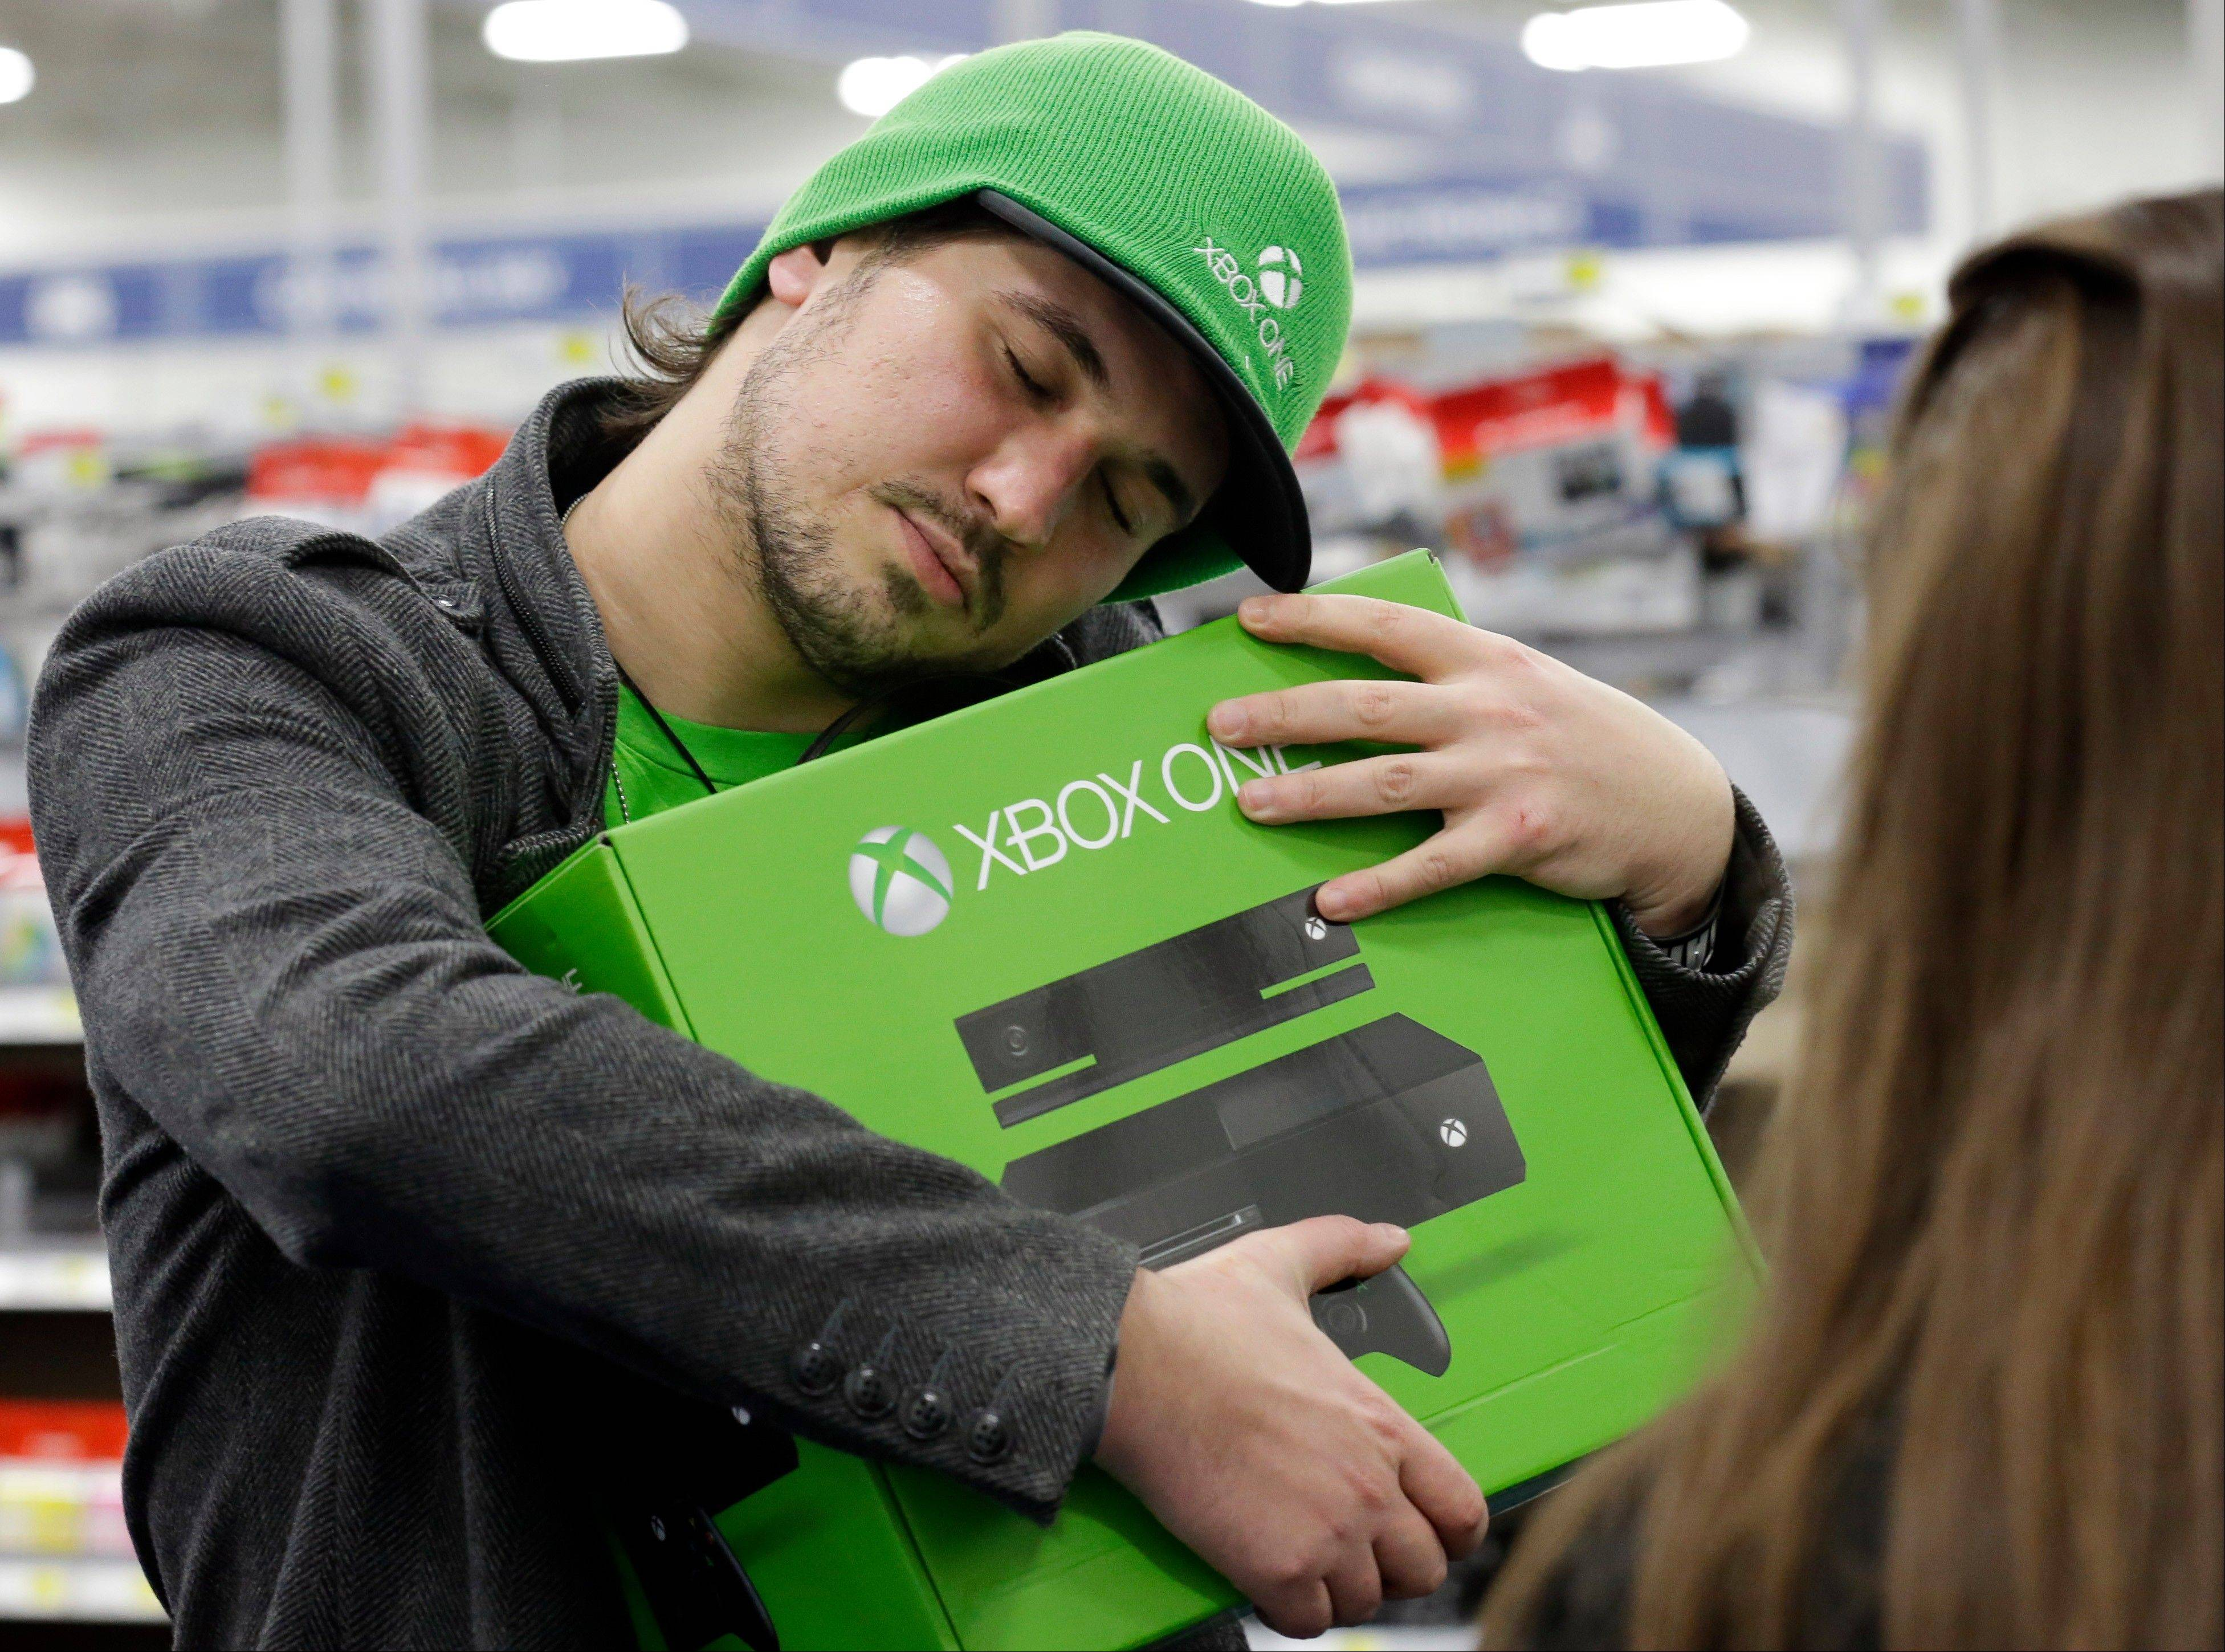 Associated Press Emanuel Jumatate, from Chicago, hugs his new Xbox One at a Best Buy on Friday, Nov. 22, 2013, in Evanston. Microsoft is billing the Xbox One, which includes an updated Kinect motion sensor, as an all-in-one entertainment system rather than just a gaming console.